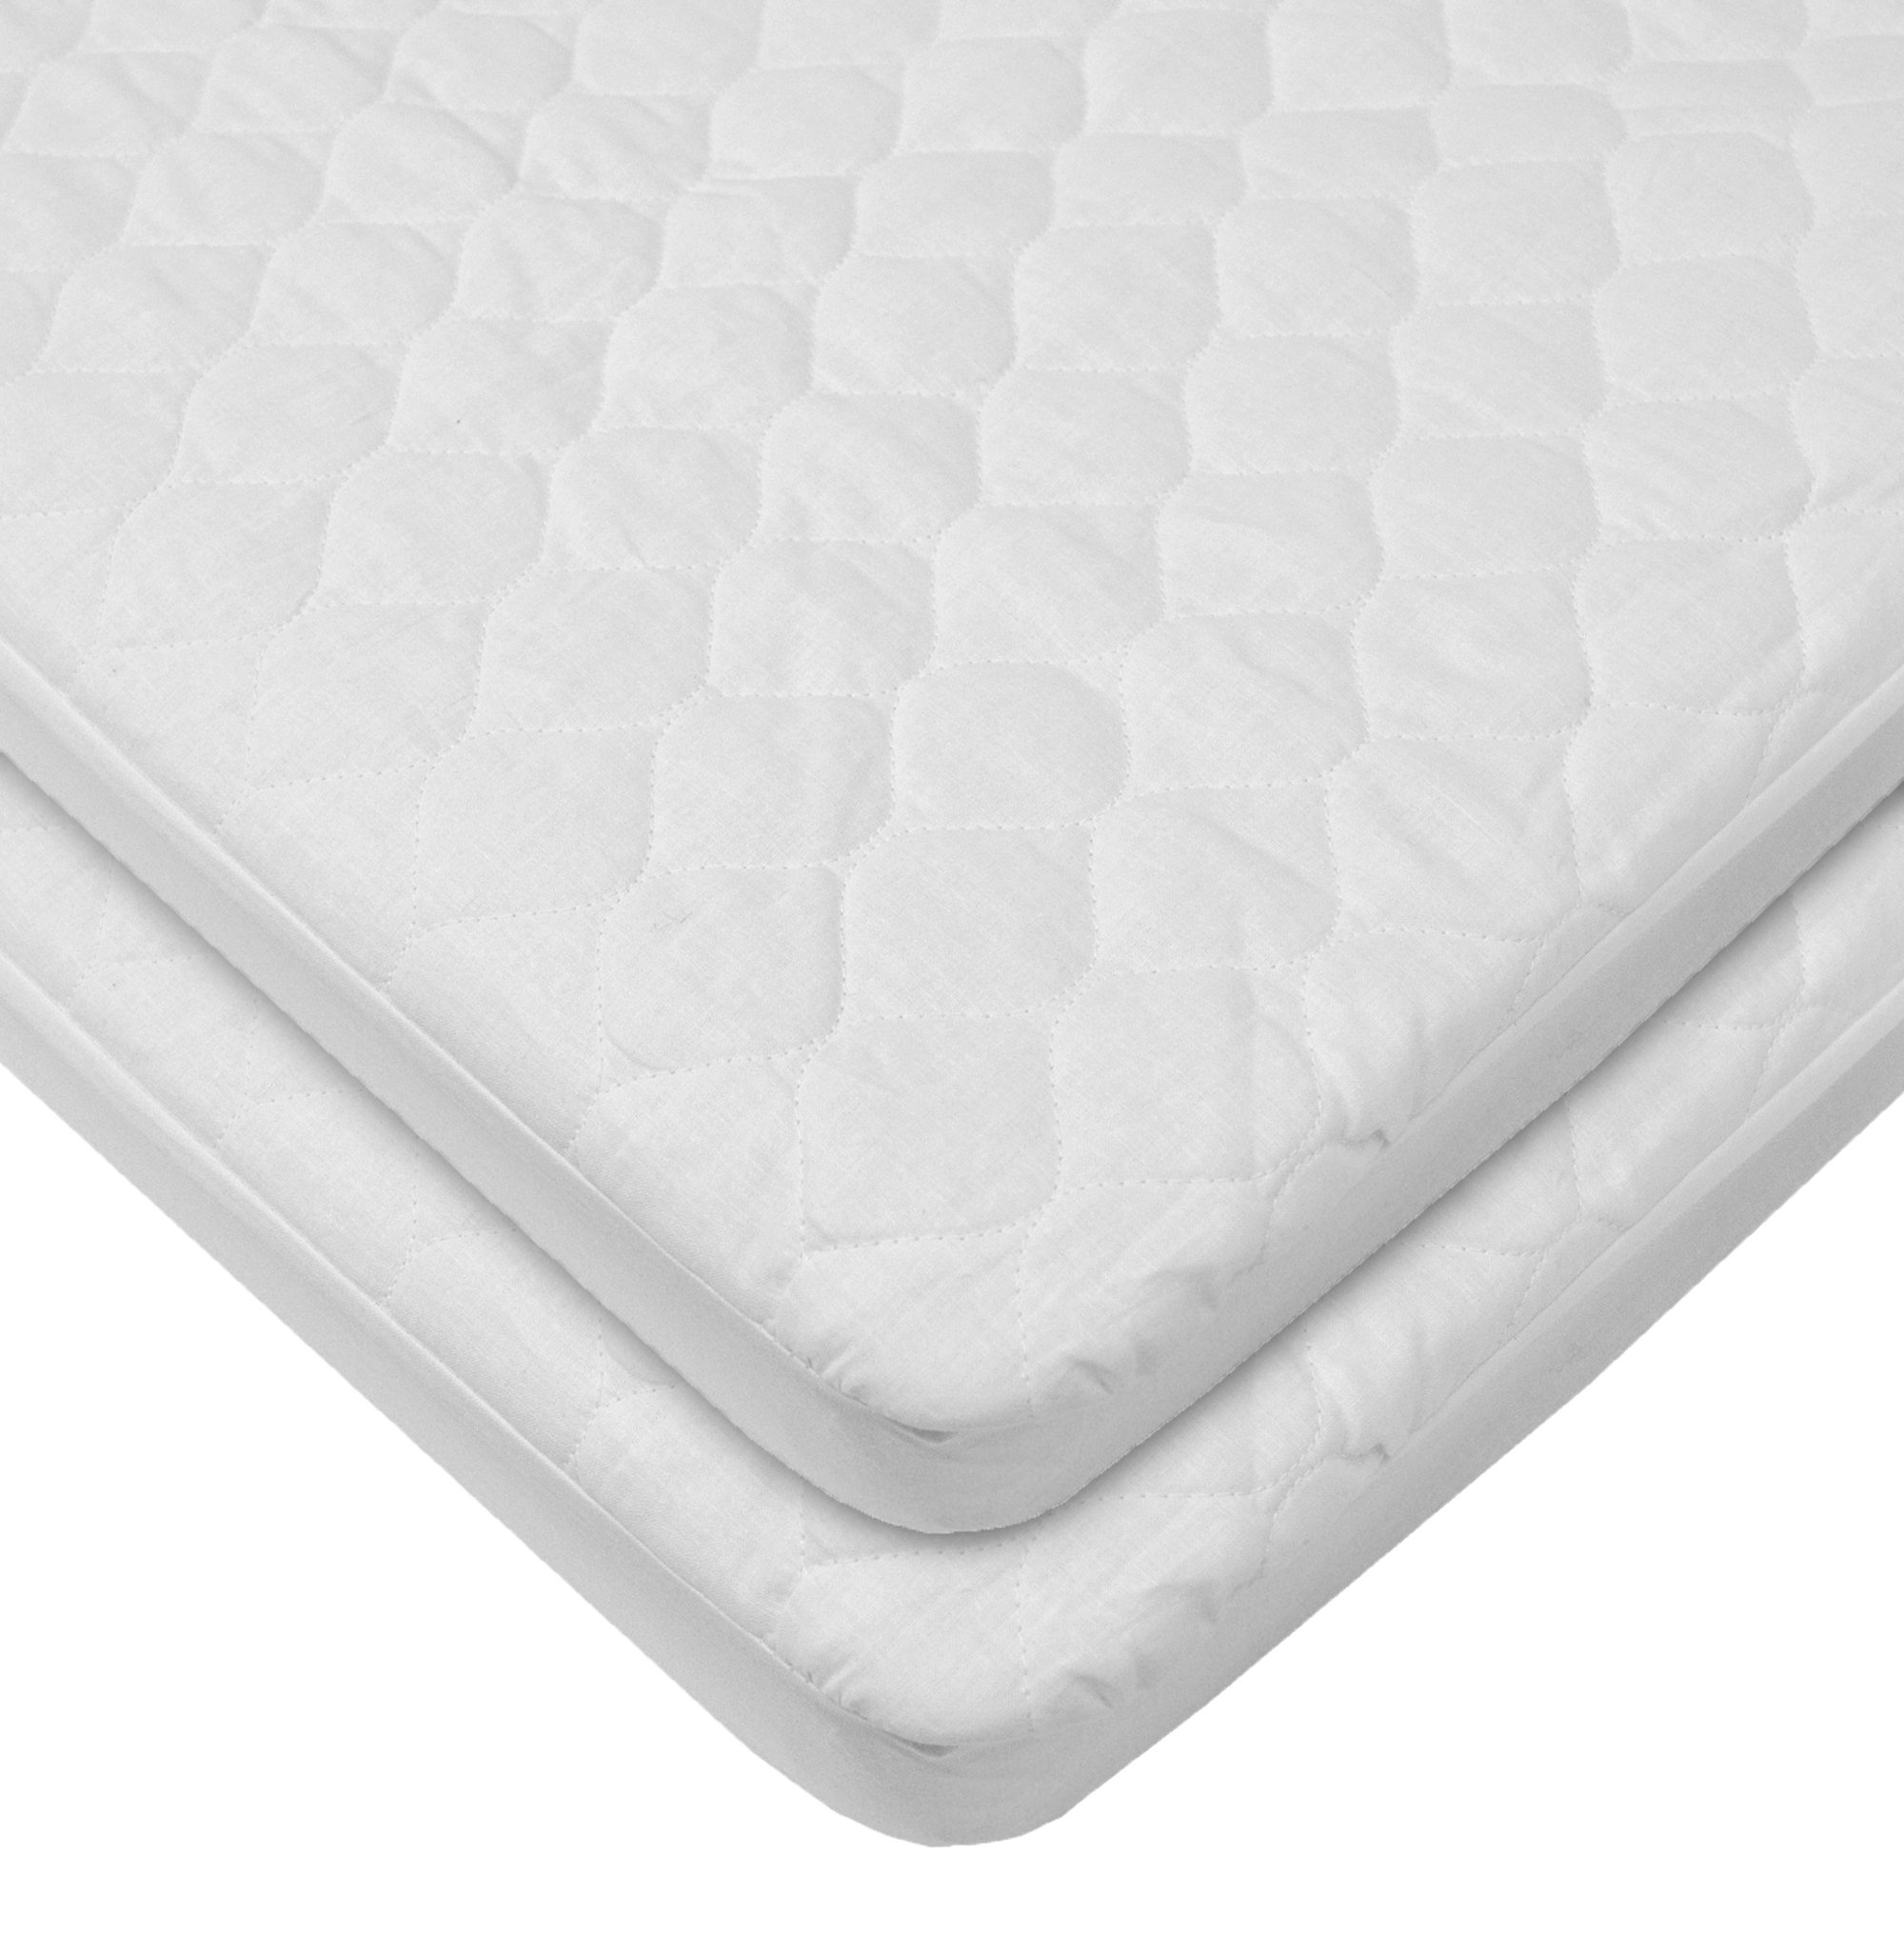 American Baby Company Waterproof fitted Quilted Portable/Mini Crib Mattress Pad Cover, 2-Count